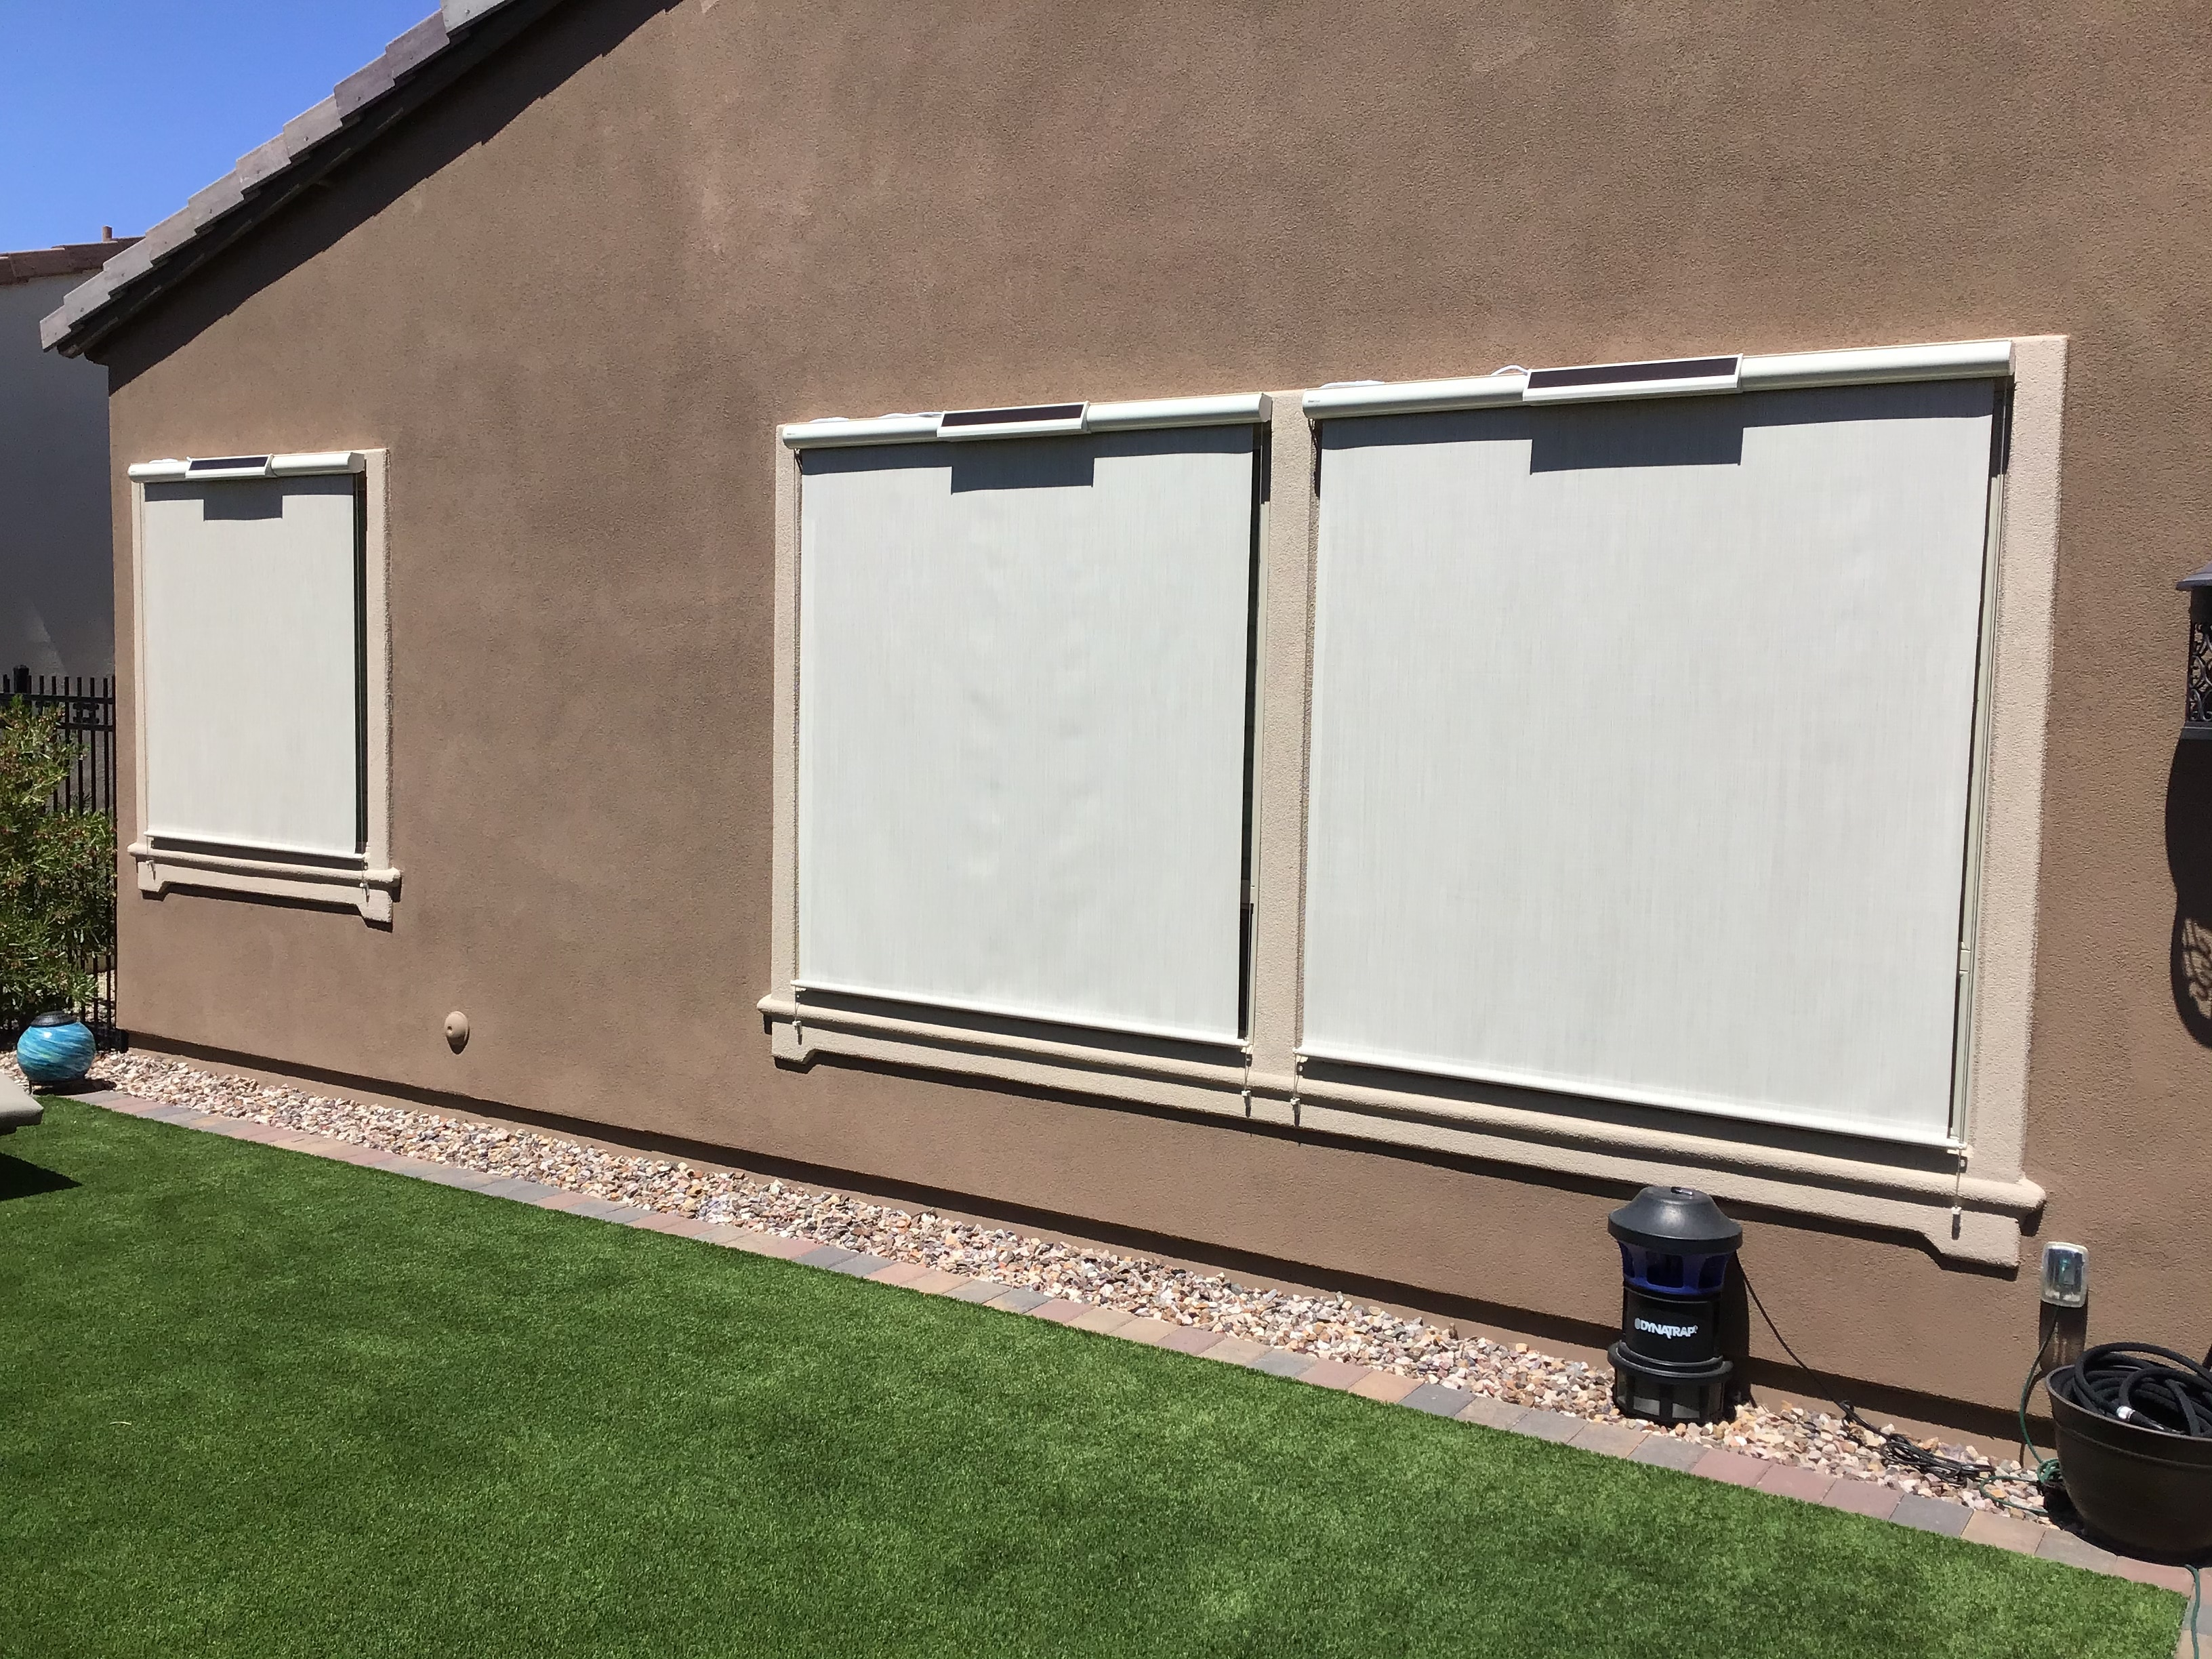 Retractable awning installations